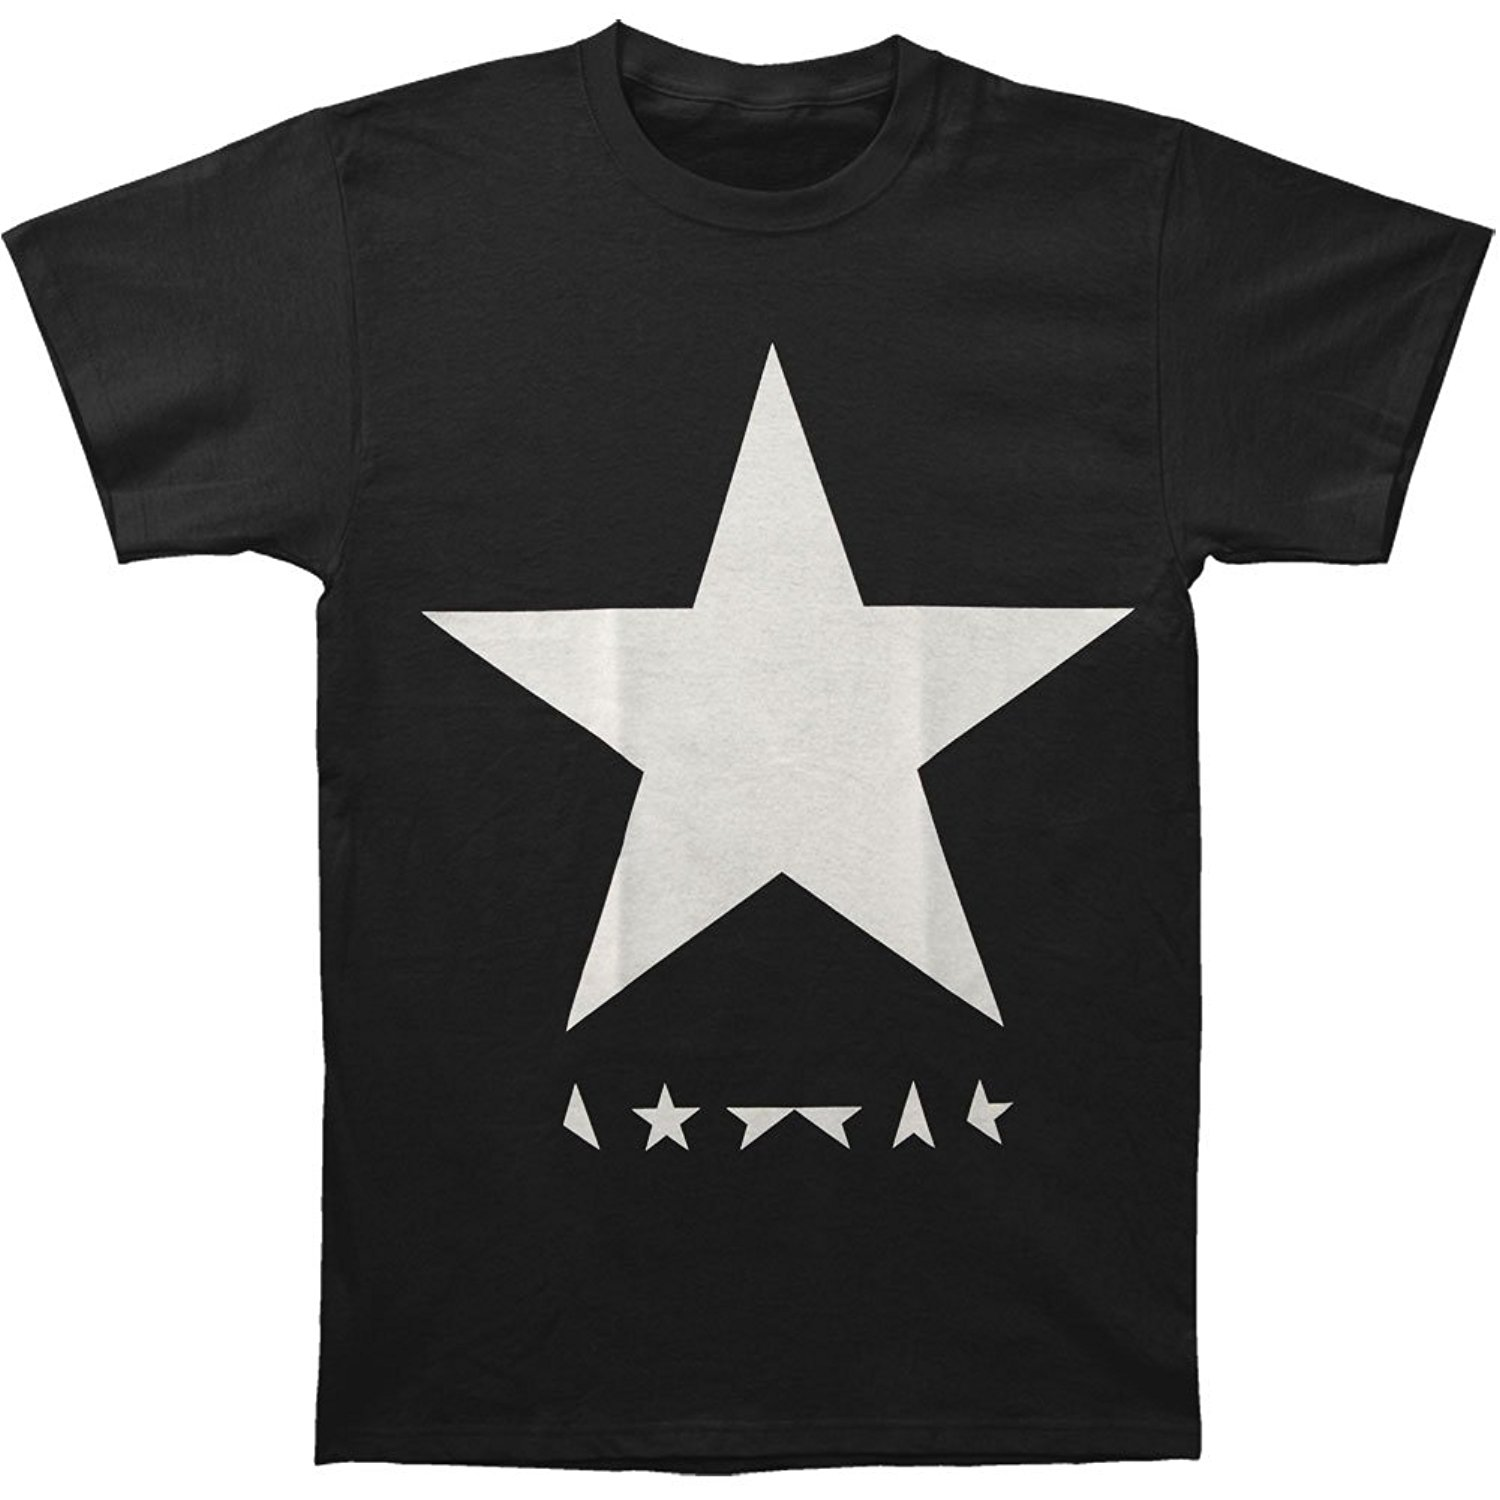 David Bowie Men's Black Star T-shirt Black Summer Short Sleeve T Shirts Tops S~3Xl Big Size Cotton Tees Free Shipping T-shirts